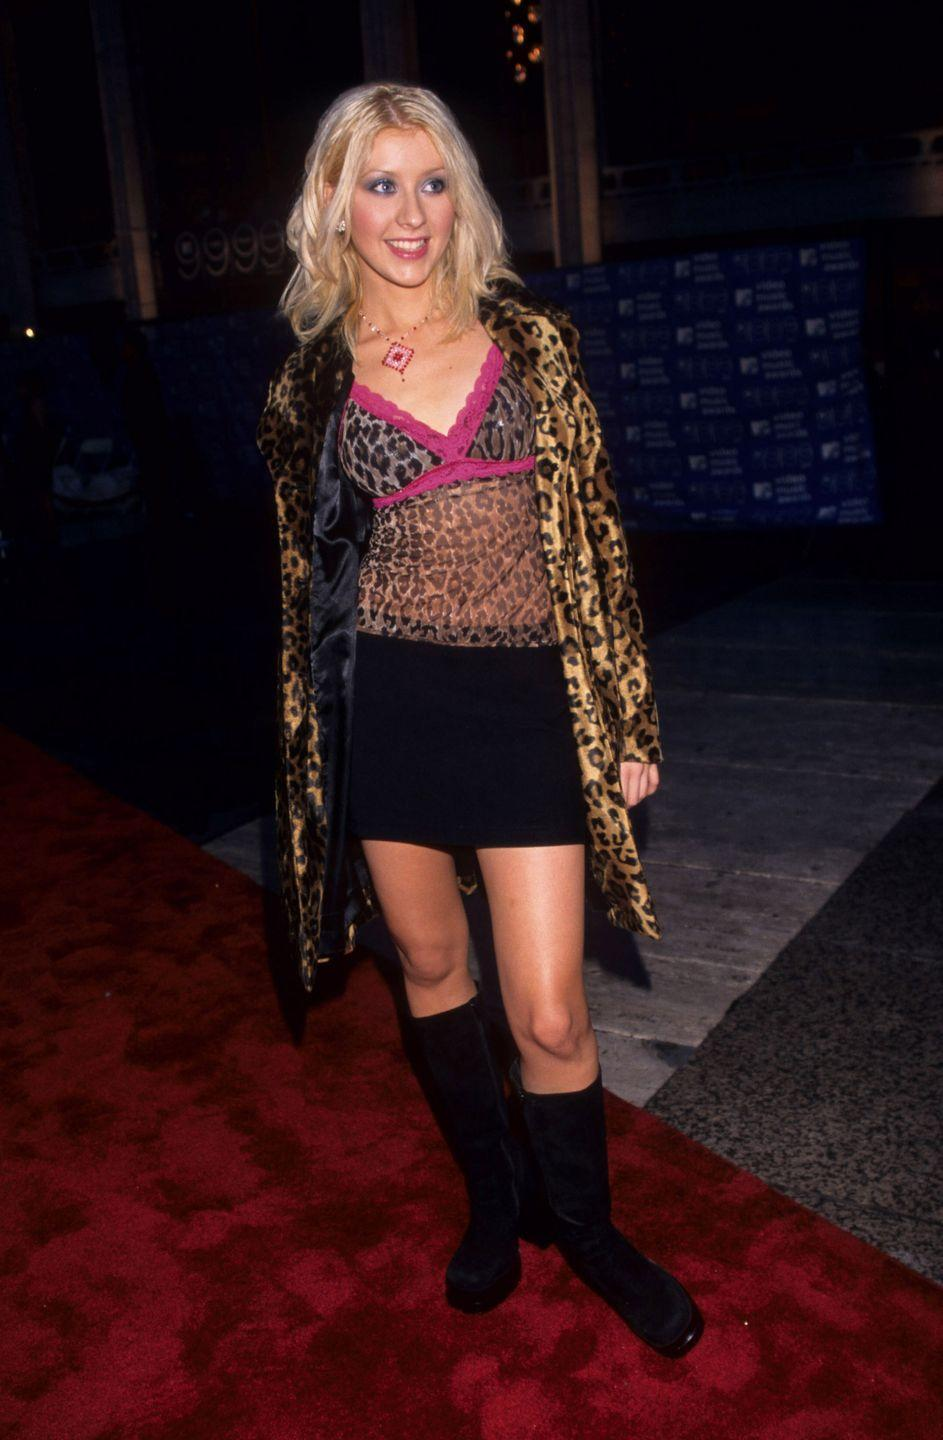 <p>Xtina donned this sheer animal-printed cami with pink lace trim and a matching jacket over a black mini and knee-high boots. </p>